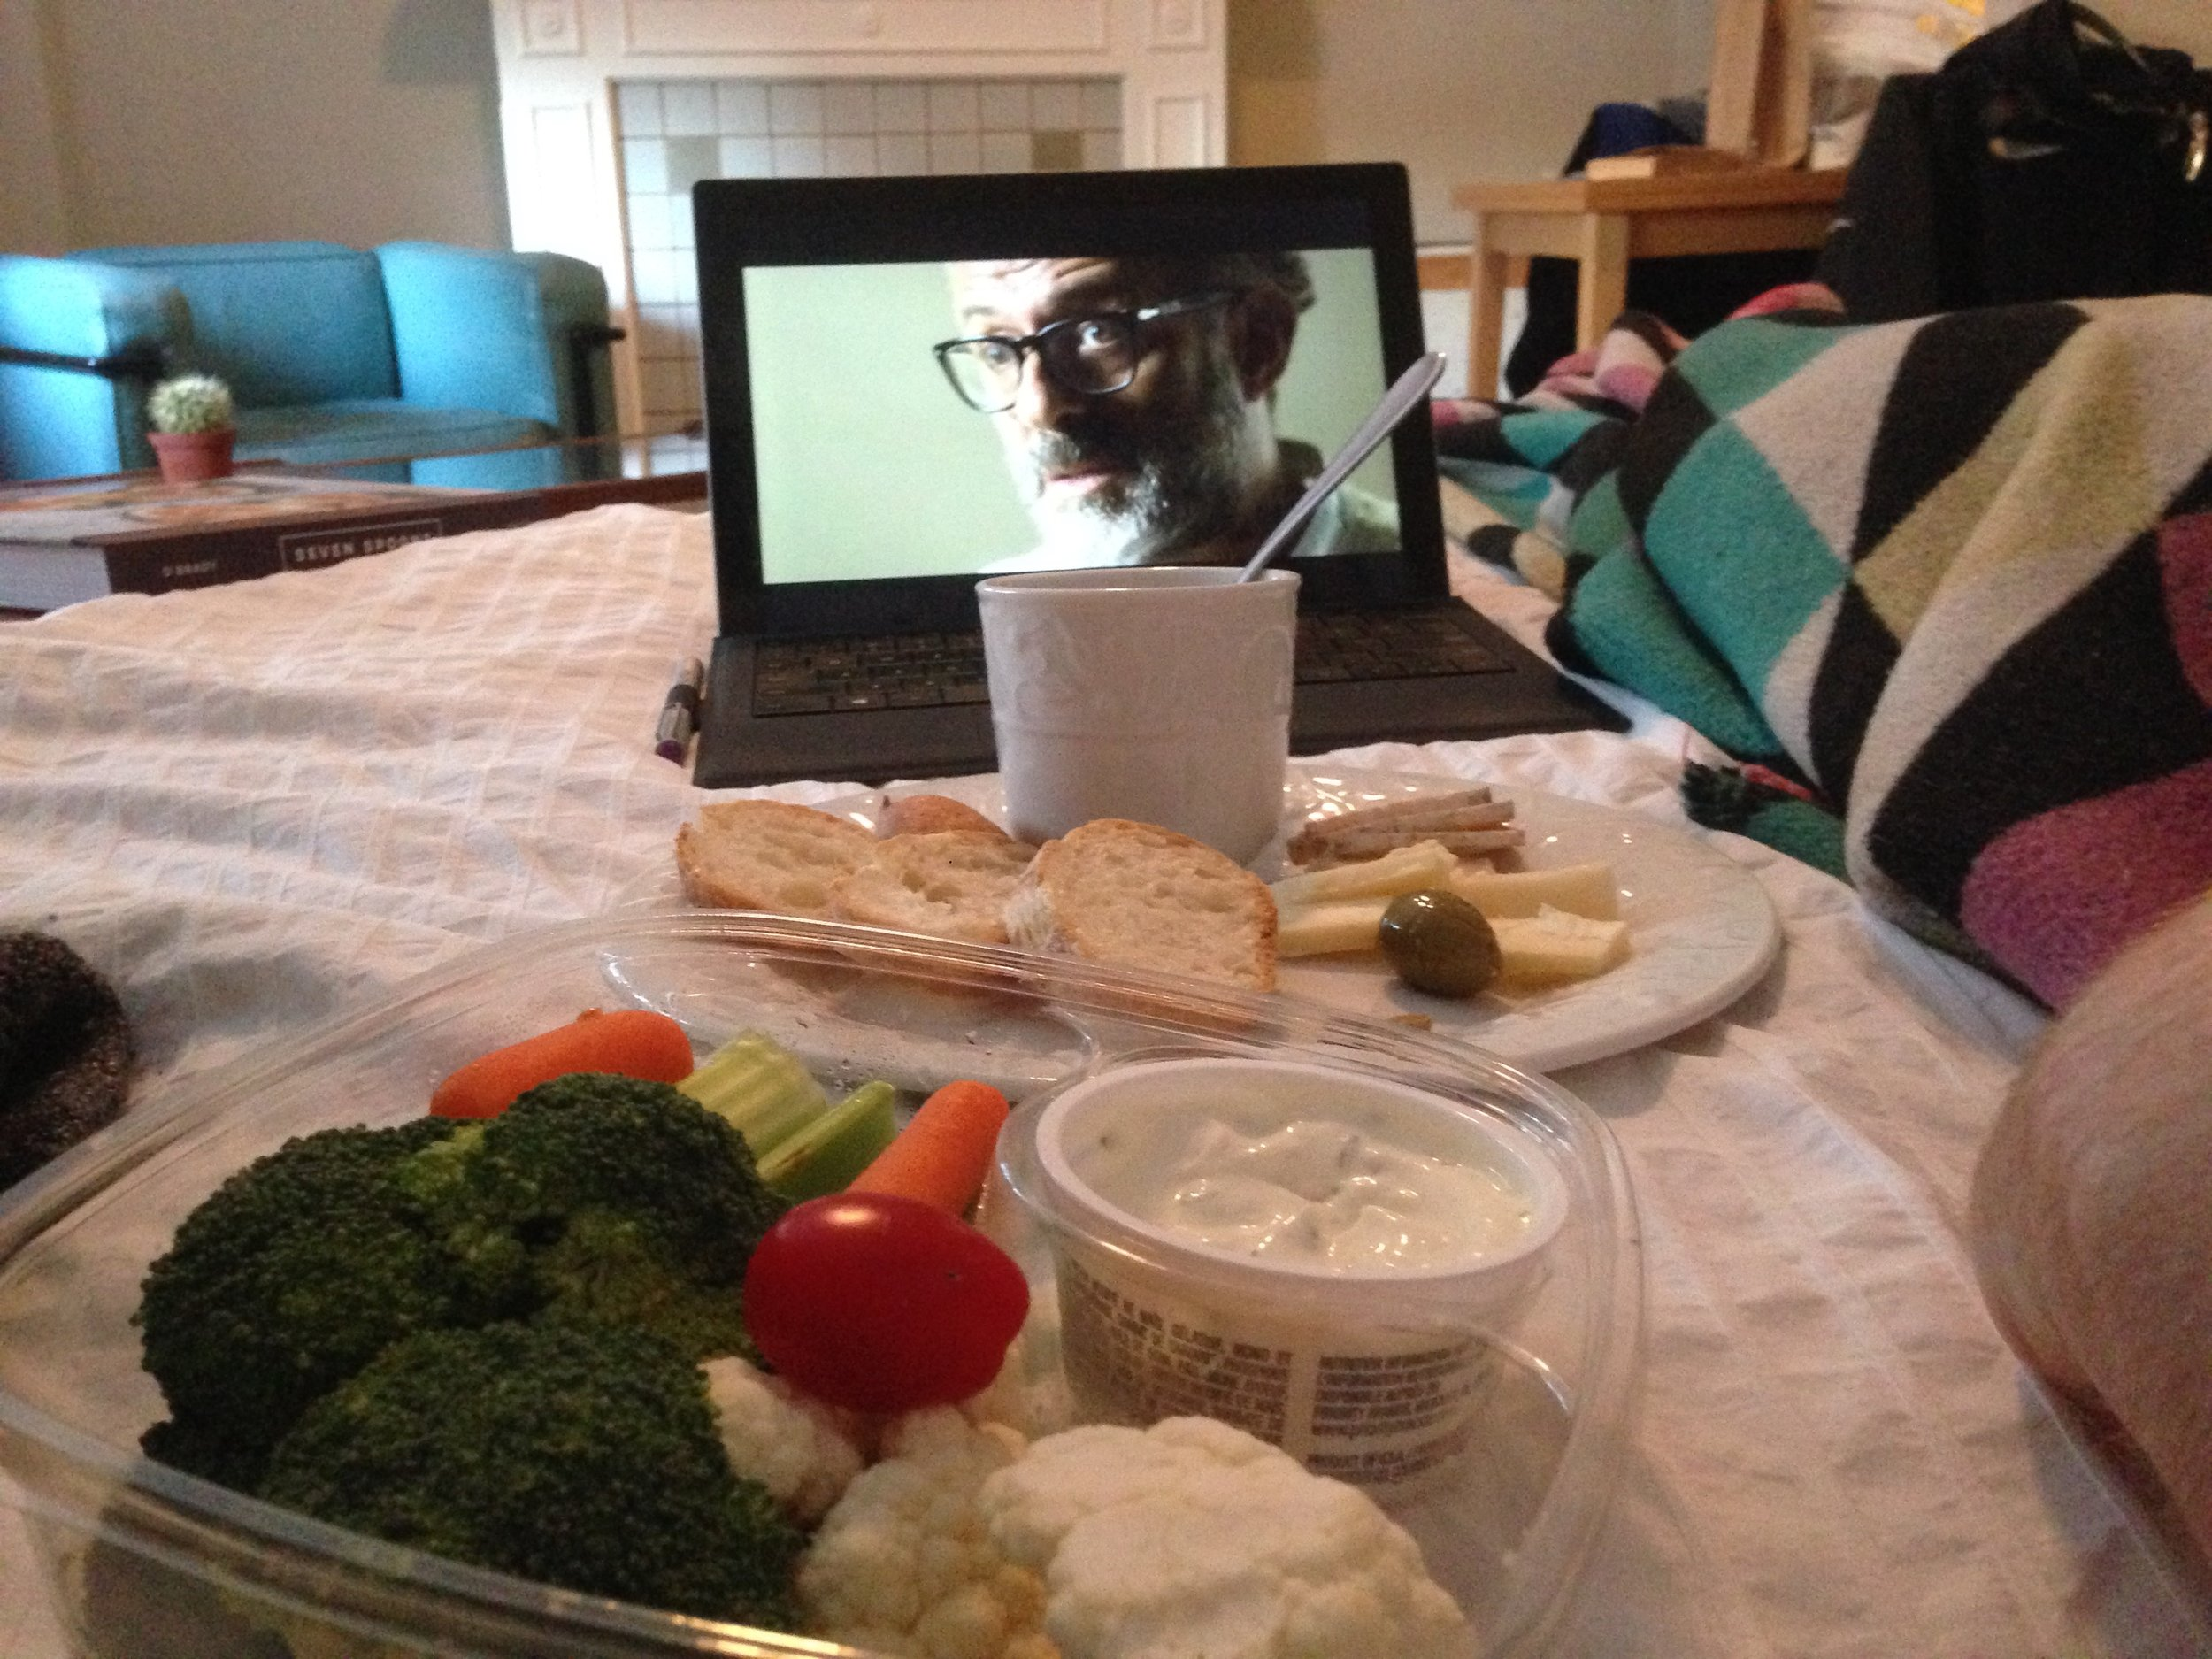 Bed side picnic and binge watching Chef's Table.